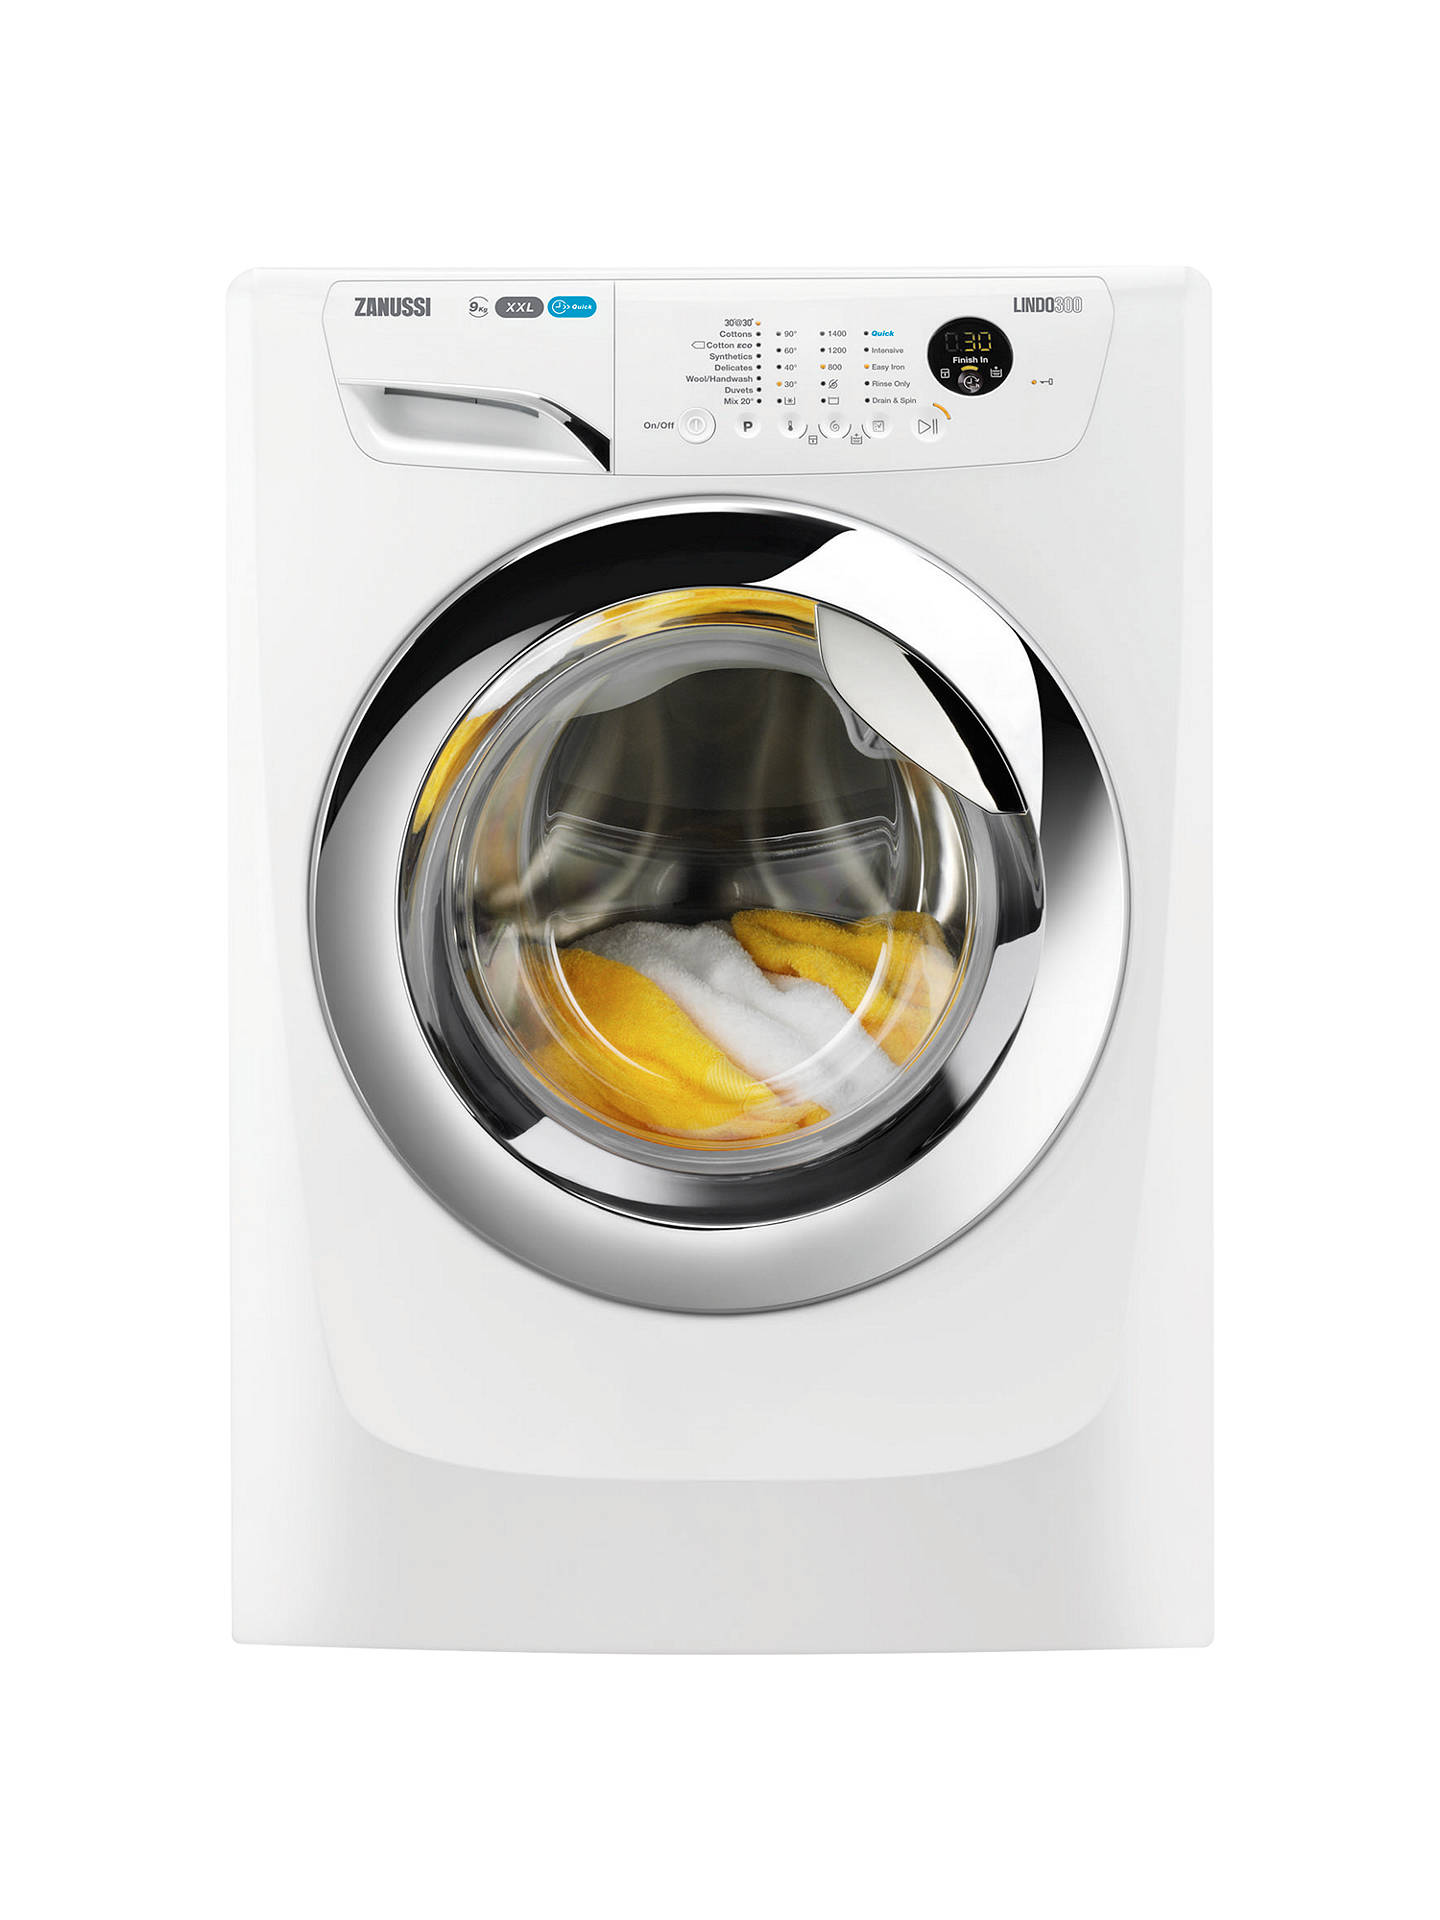 Buy Zanussi ZWF91483WH Washing Machine, 9kg Load, A+++ Energy Rating, 1400rpm Spin, White Online at johnlewis.com